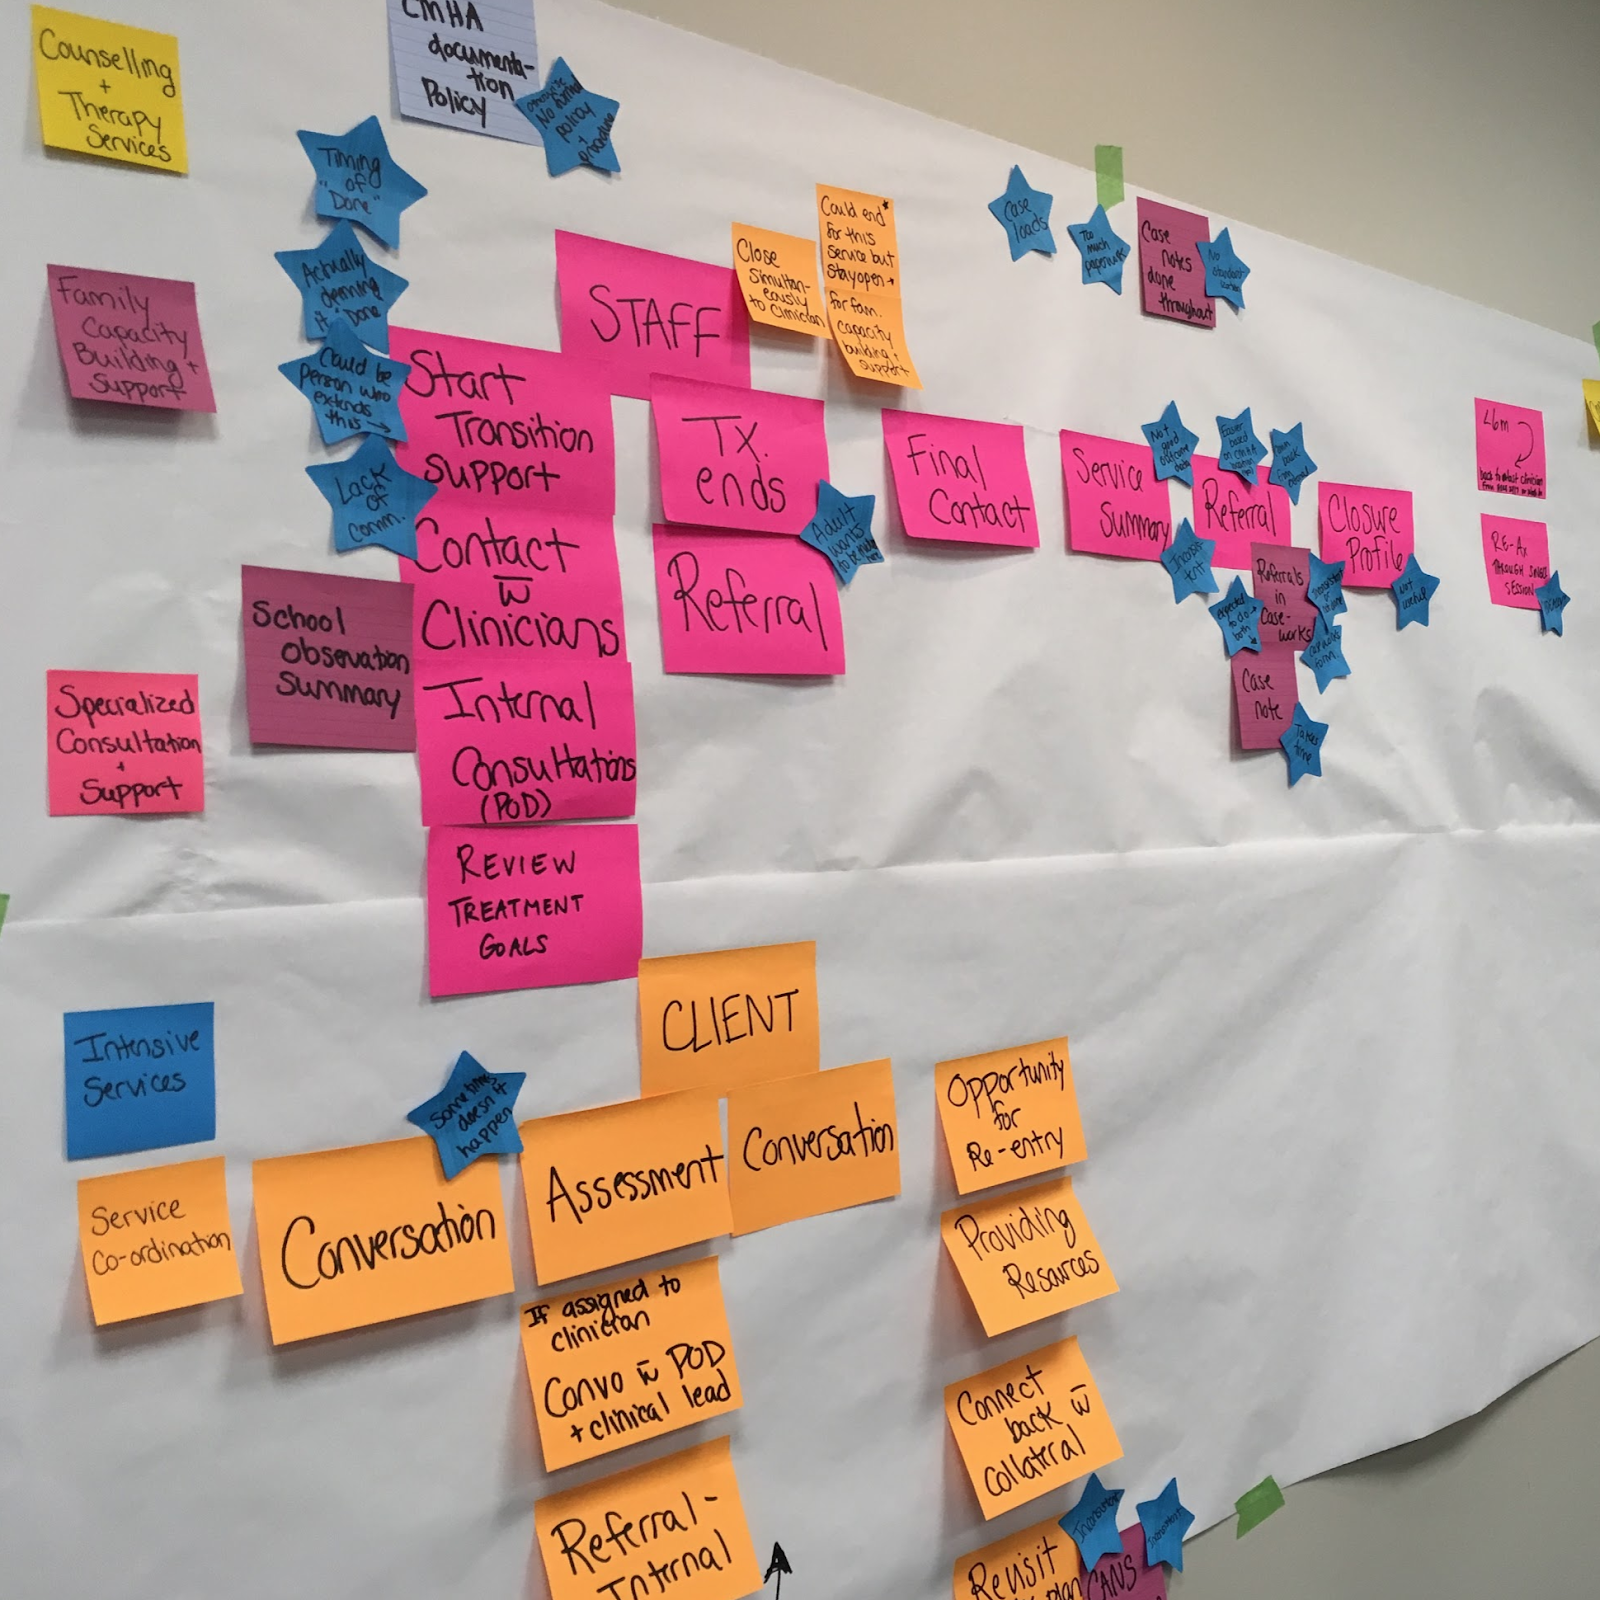 "Image A: Sticky note map from the CMHA ""Out"" mapping session on February 7, 2018 facilitated by the Centre of Excellence."